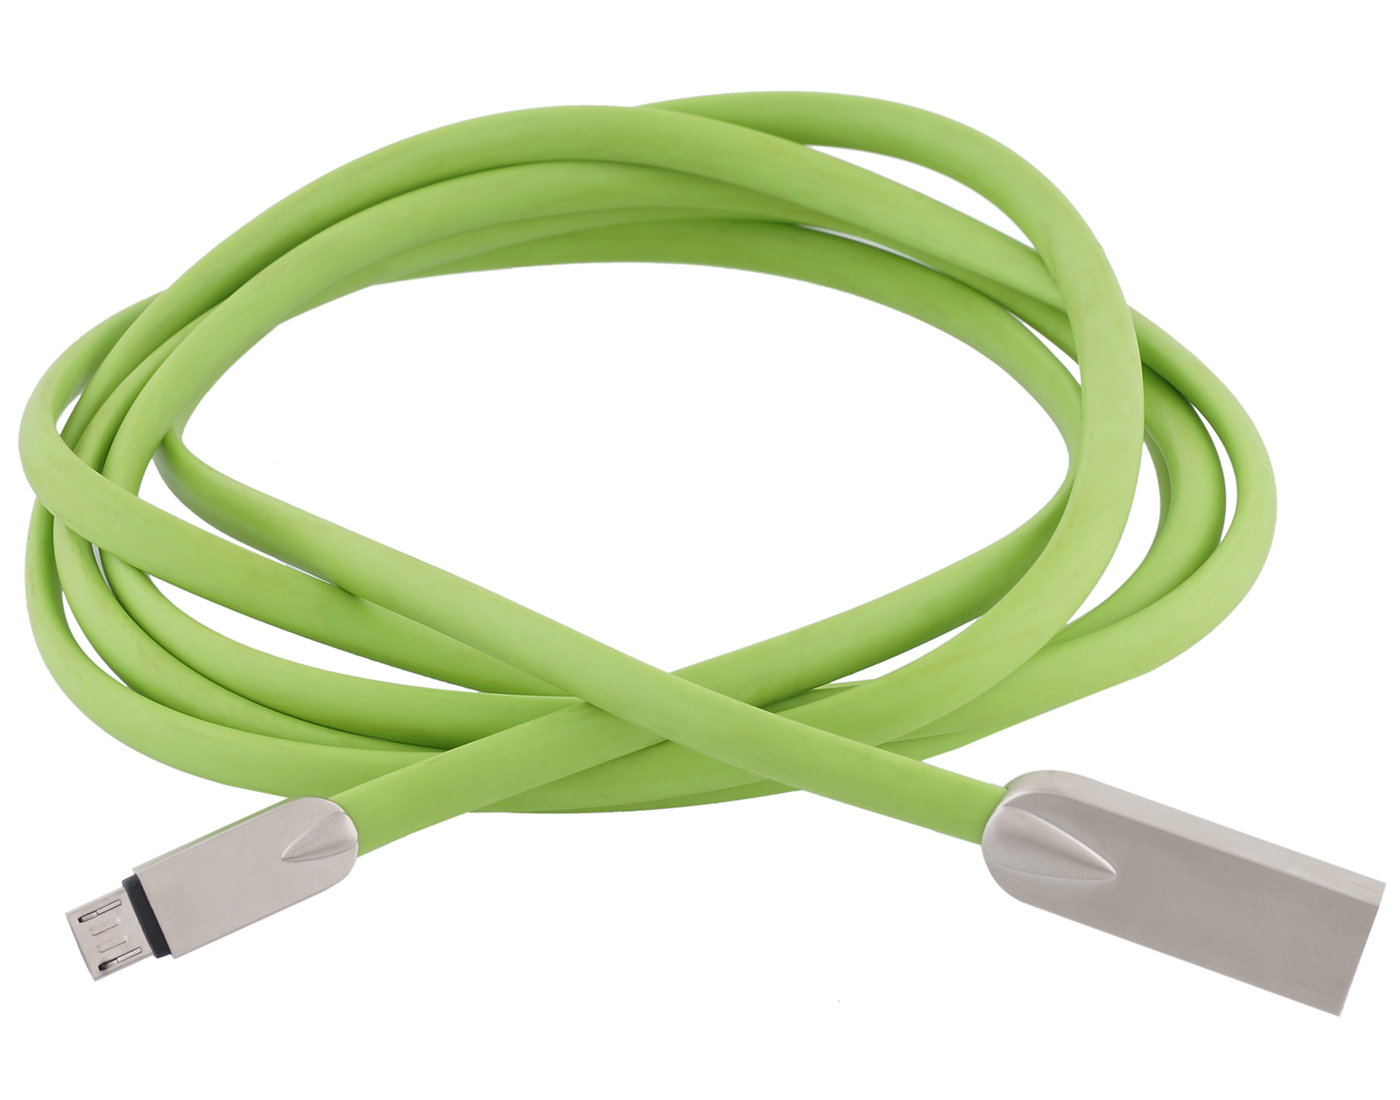 POSHIRE 1.8 mtr  6 ft  long Zinc Alloy braided Micro USB Cable 2.4A USB Cable  Green